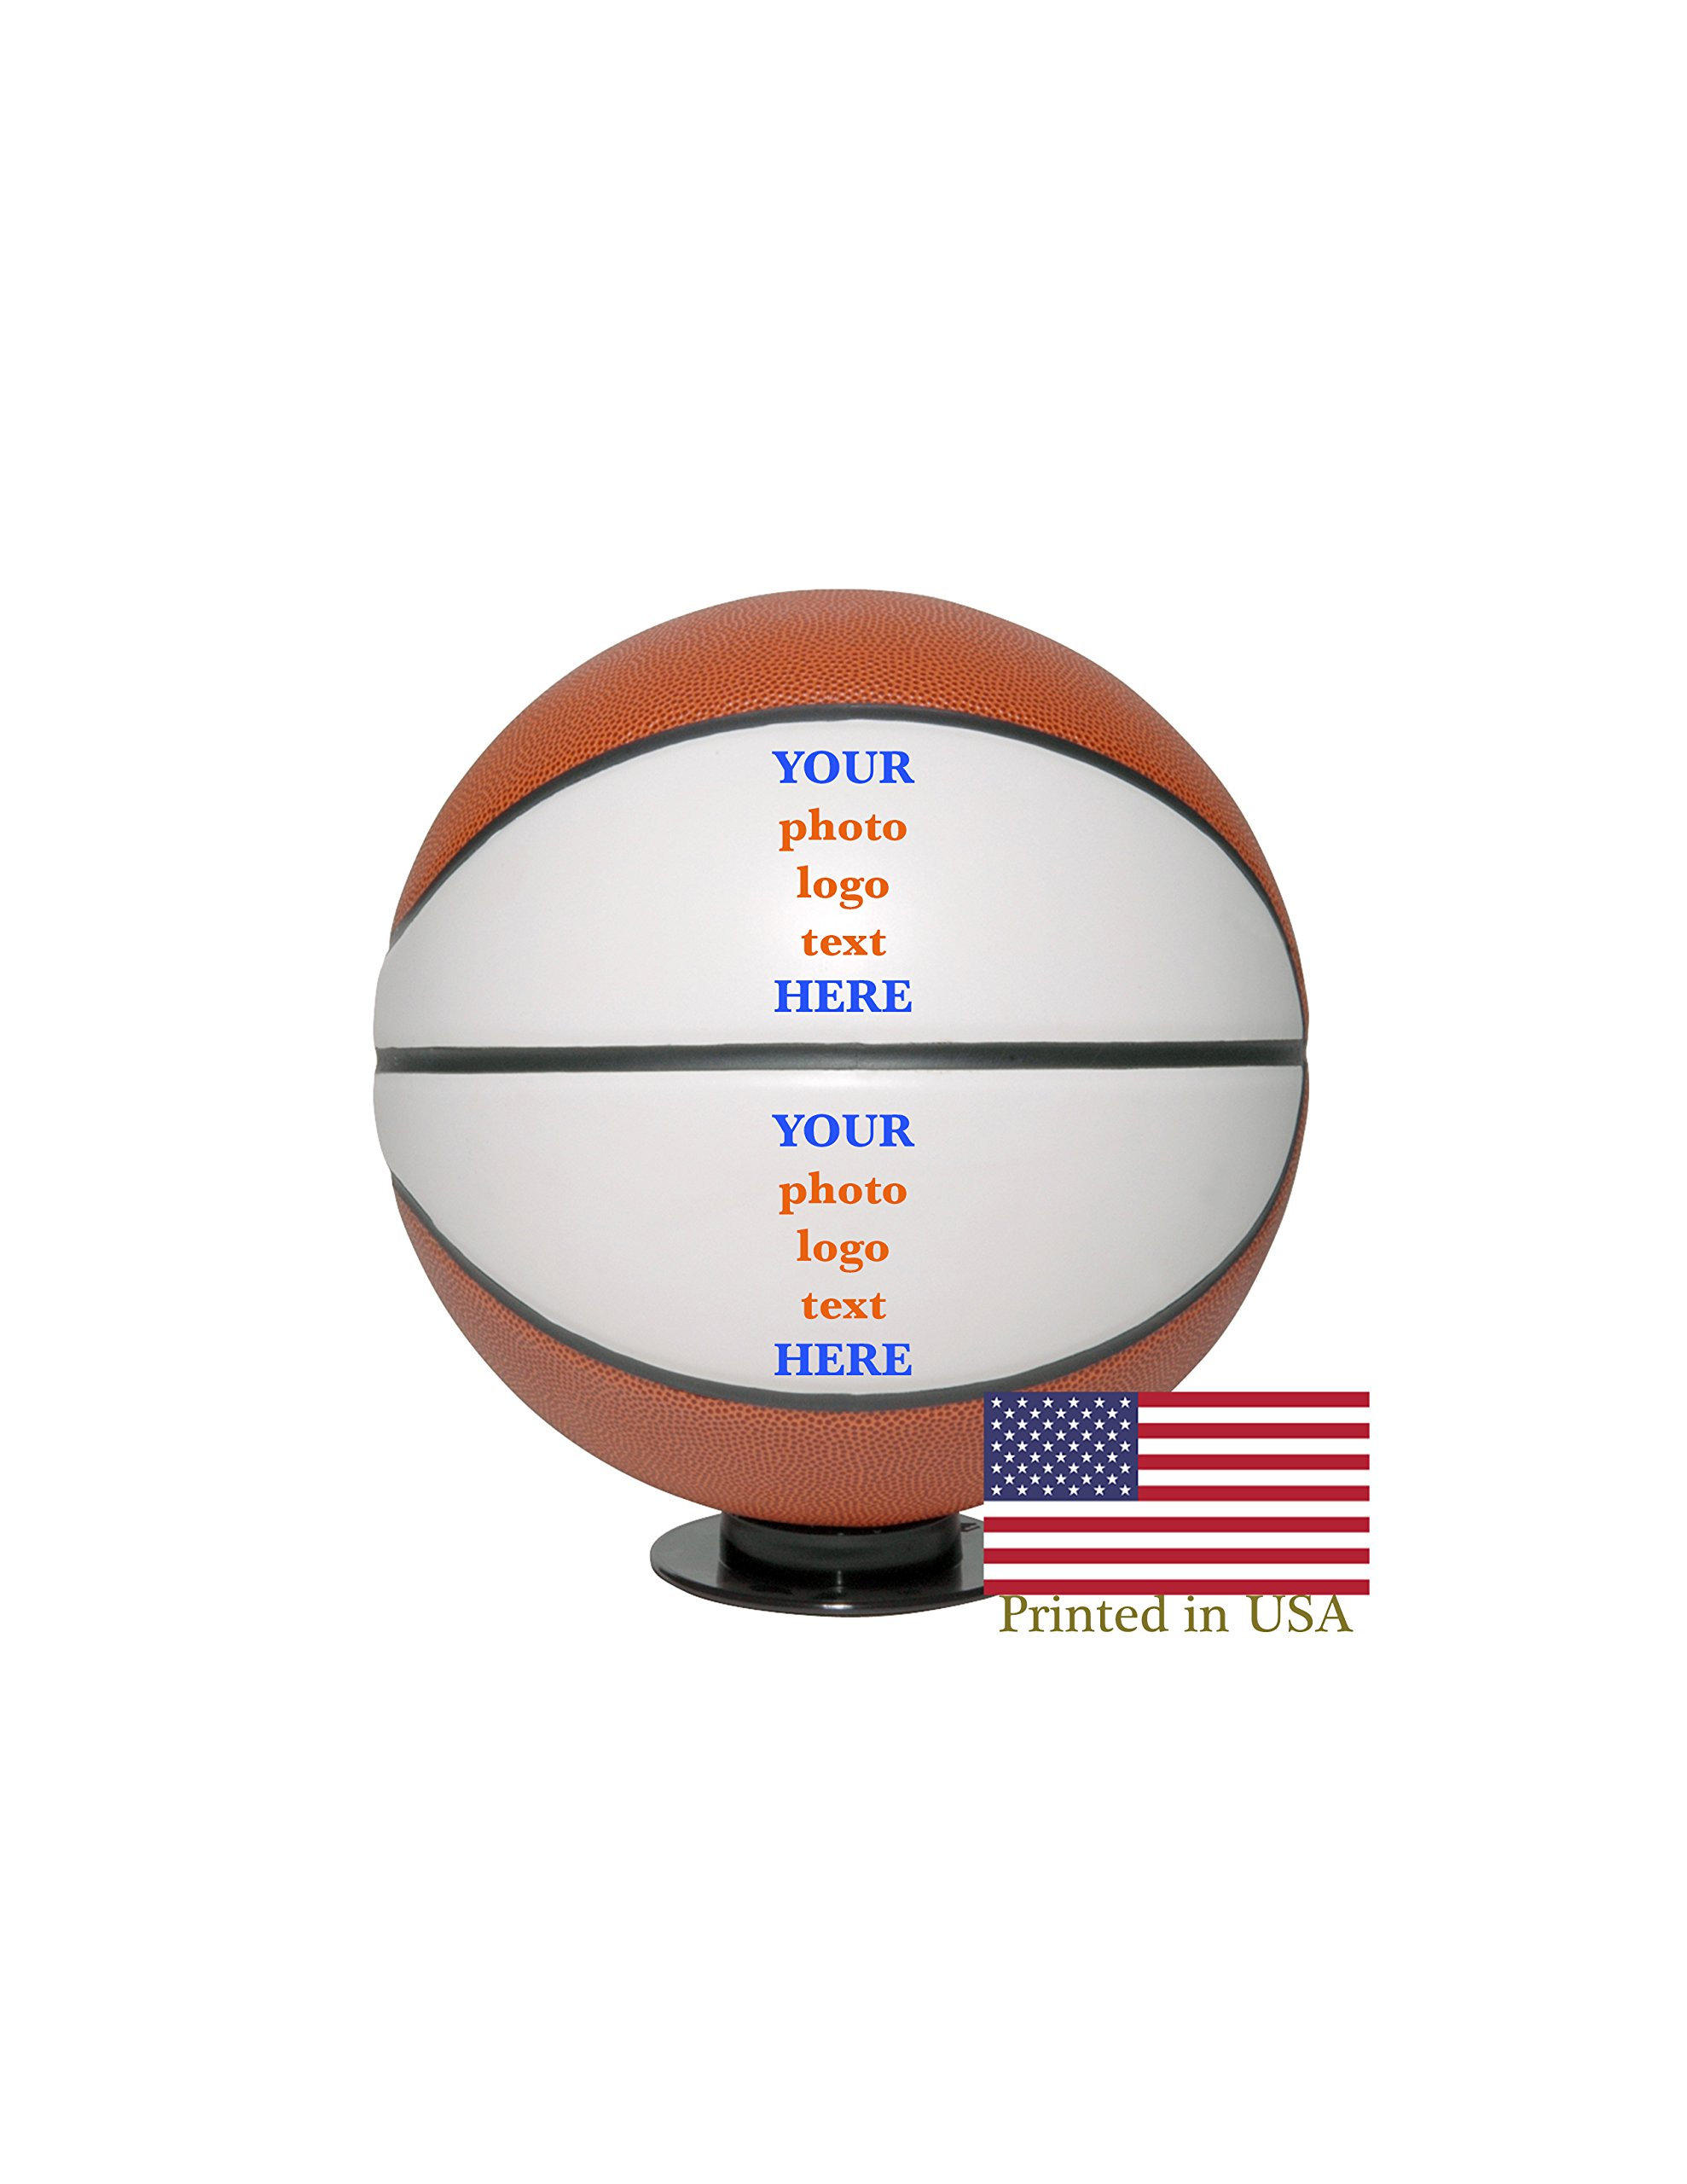 Custom Personalized Basketball Ships in 1 Day, High Resolution Photos, Logos & Text on Basketball Balls for Players, Trophies, MVP Awards, Coaches, Personalized Gifts